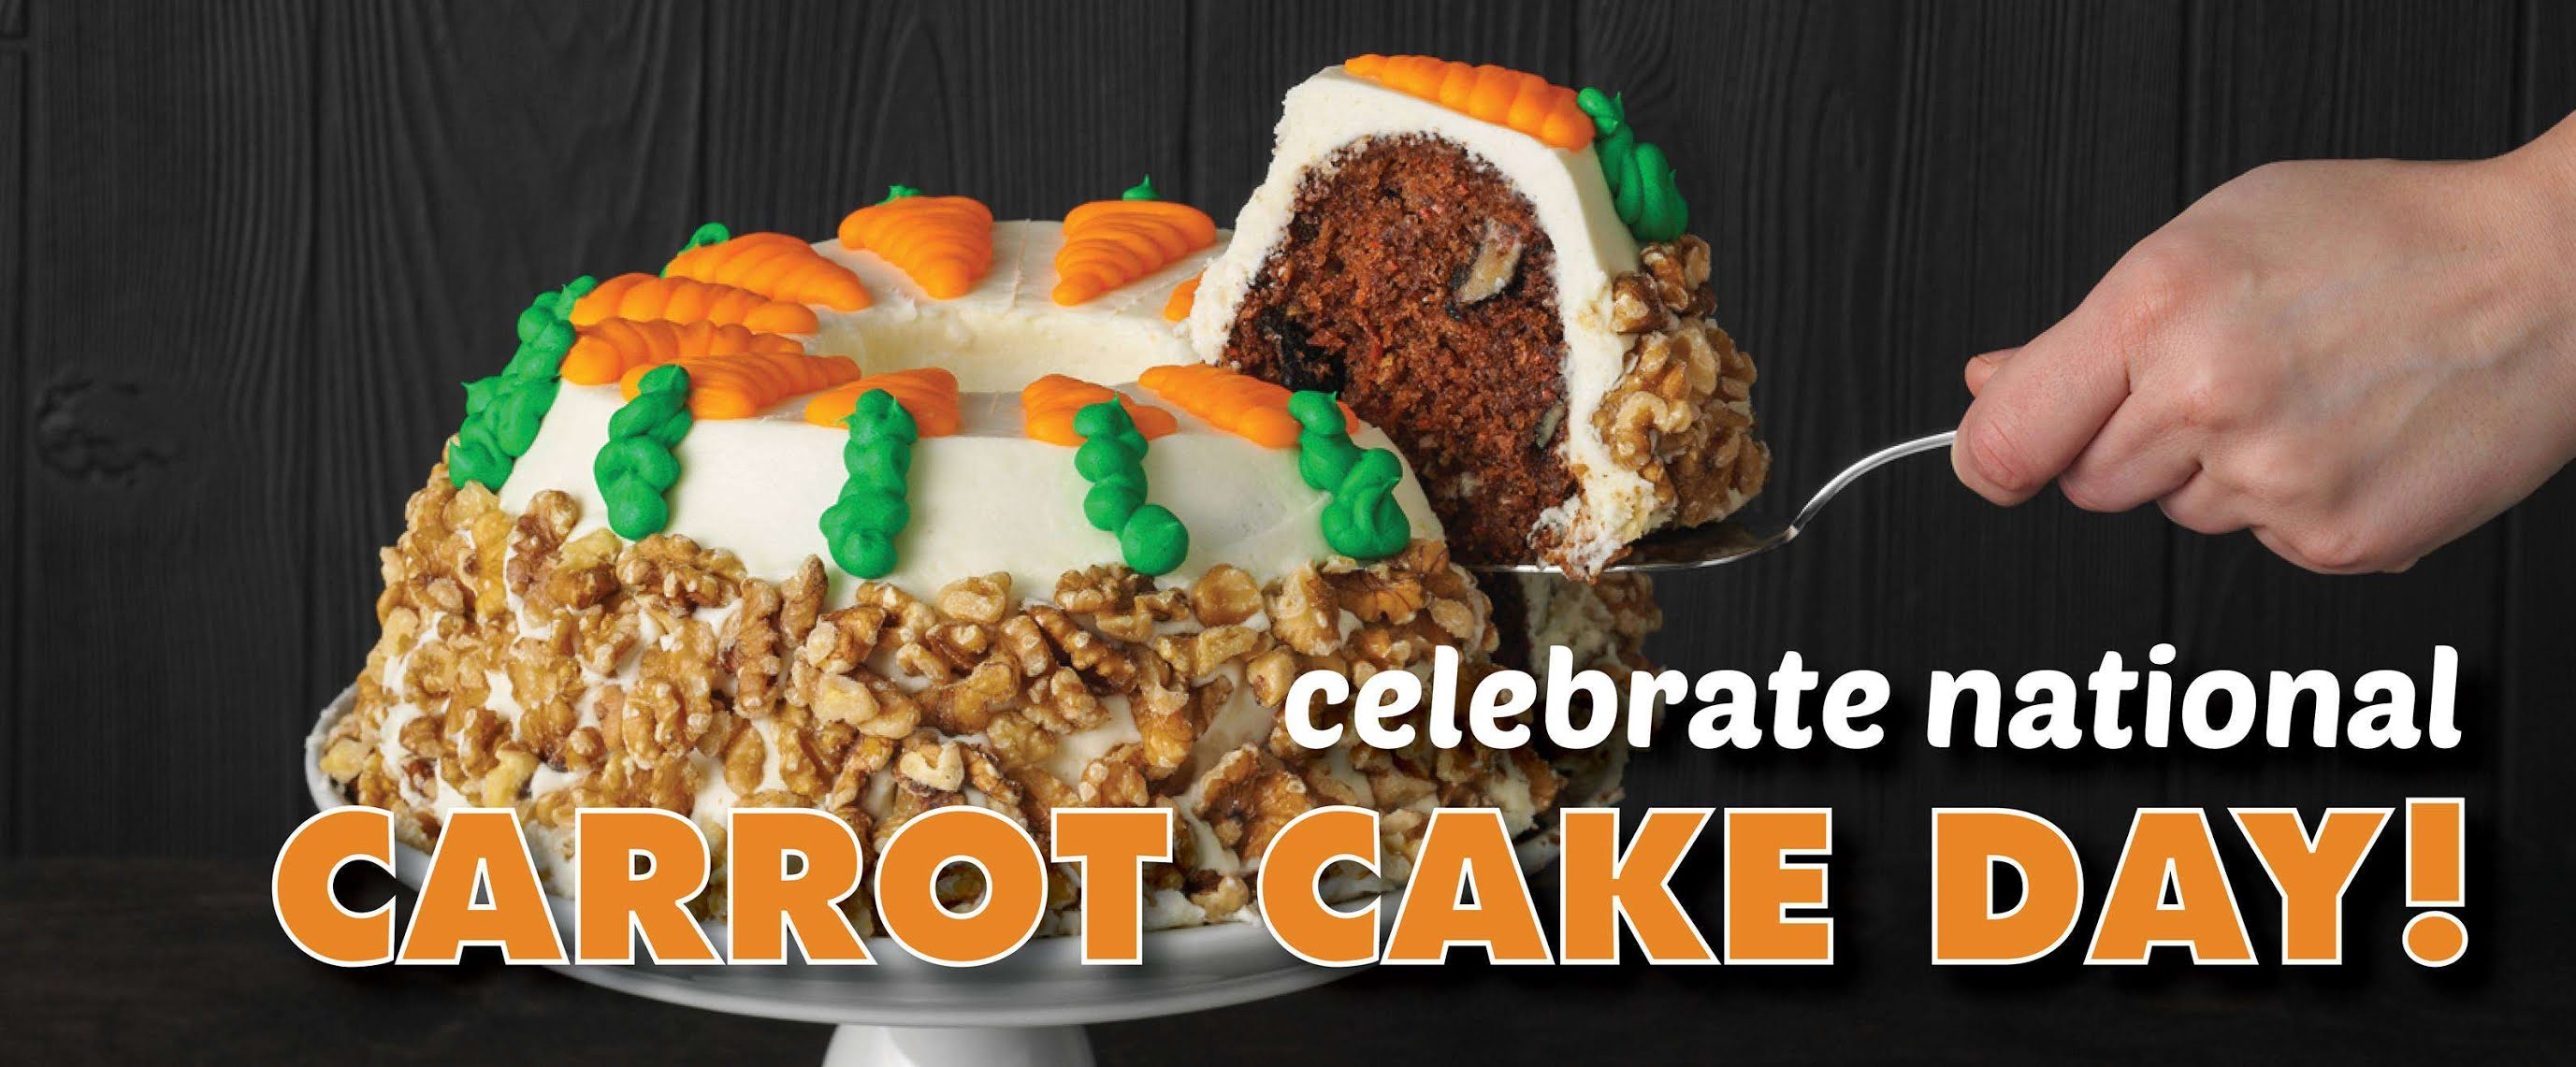 National Carrot Cake Day Wishes Unique Image